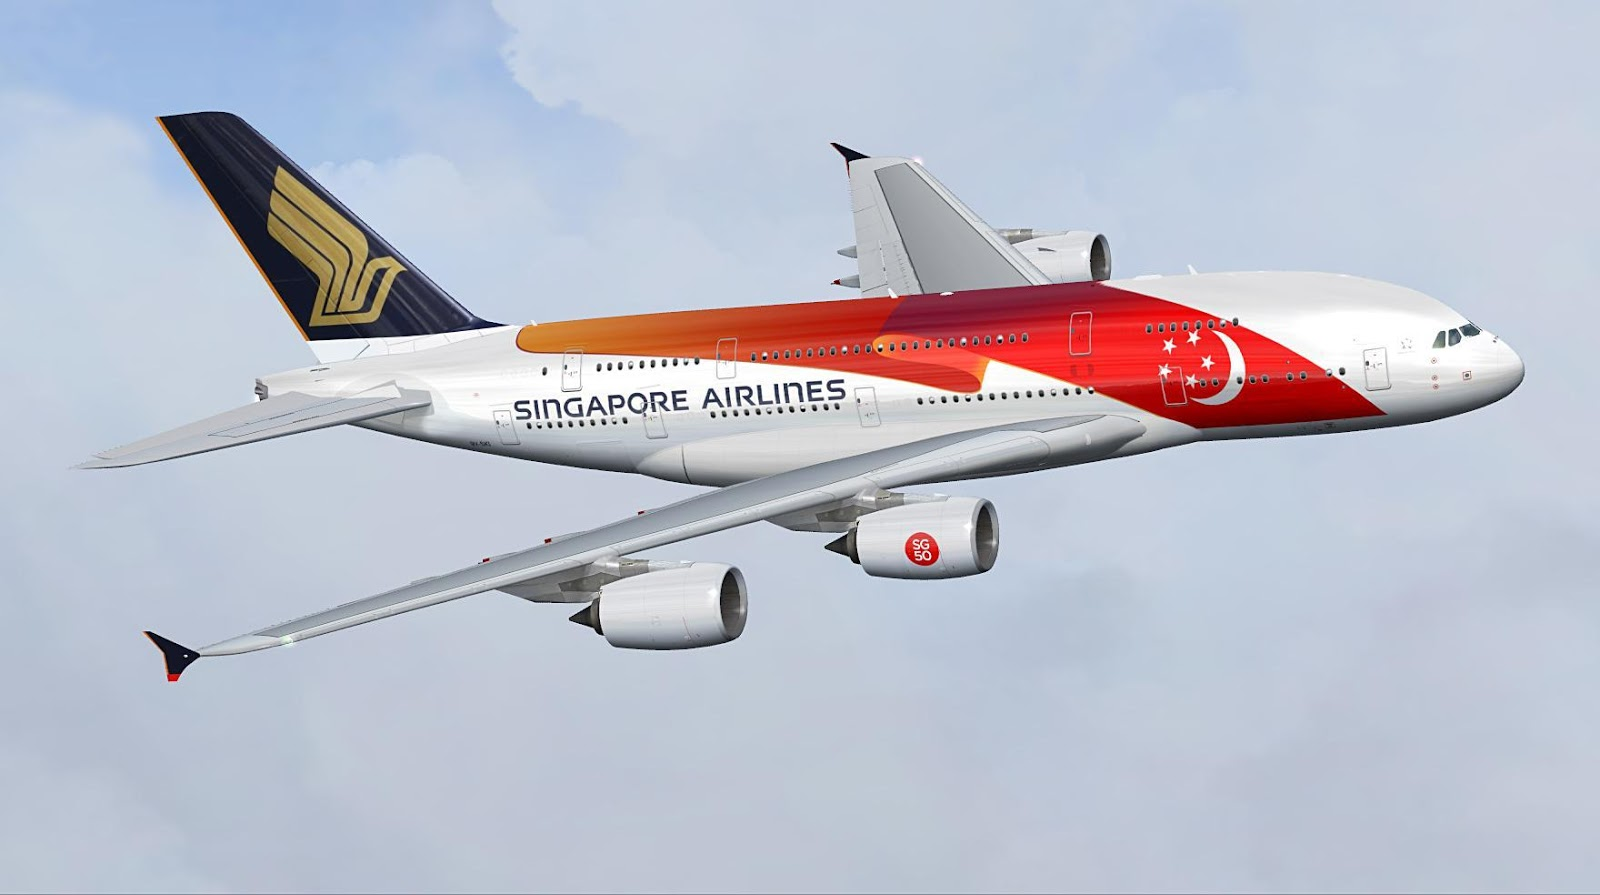 airbus a380 project Project airbus presents the airbus a380-800 features include dynamic wingflex (with input from several new variables), accurate laf simulation, parallel bogies, drooping control surfaces, hardcoded double strobes, and over 40 other custom xml parts.